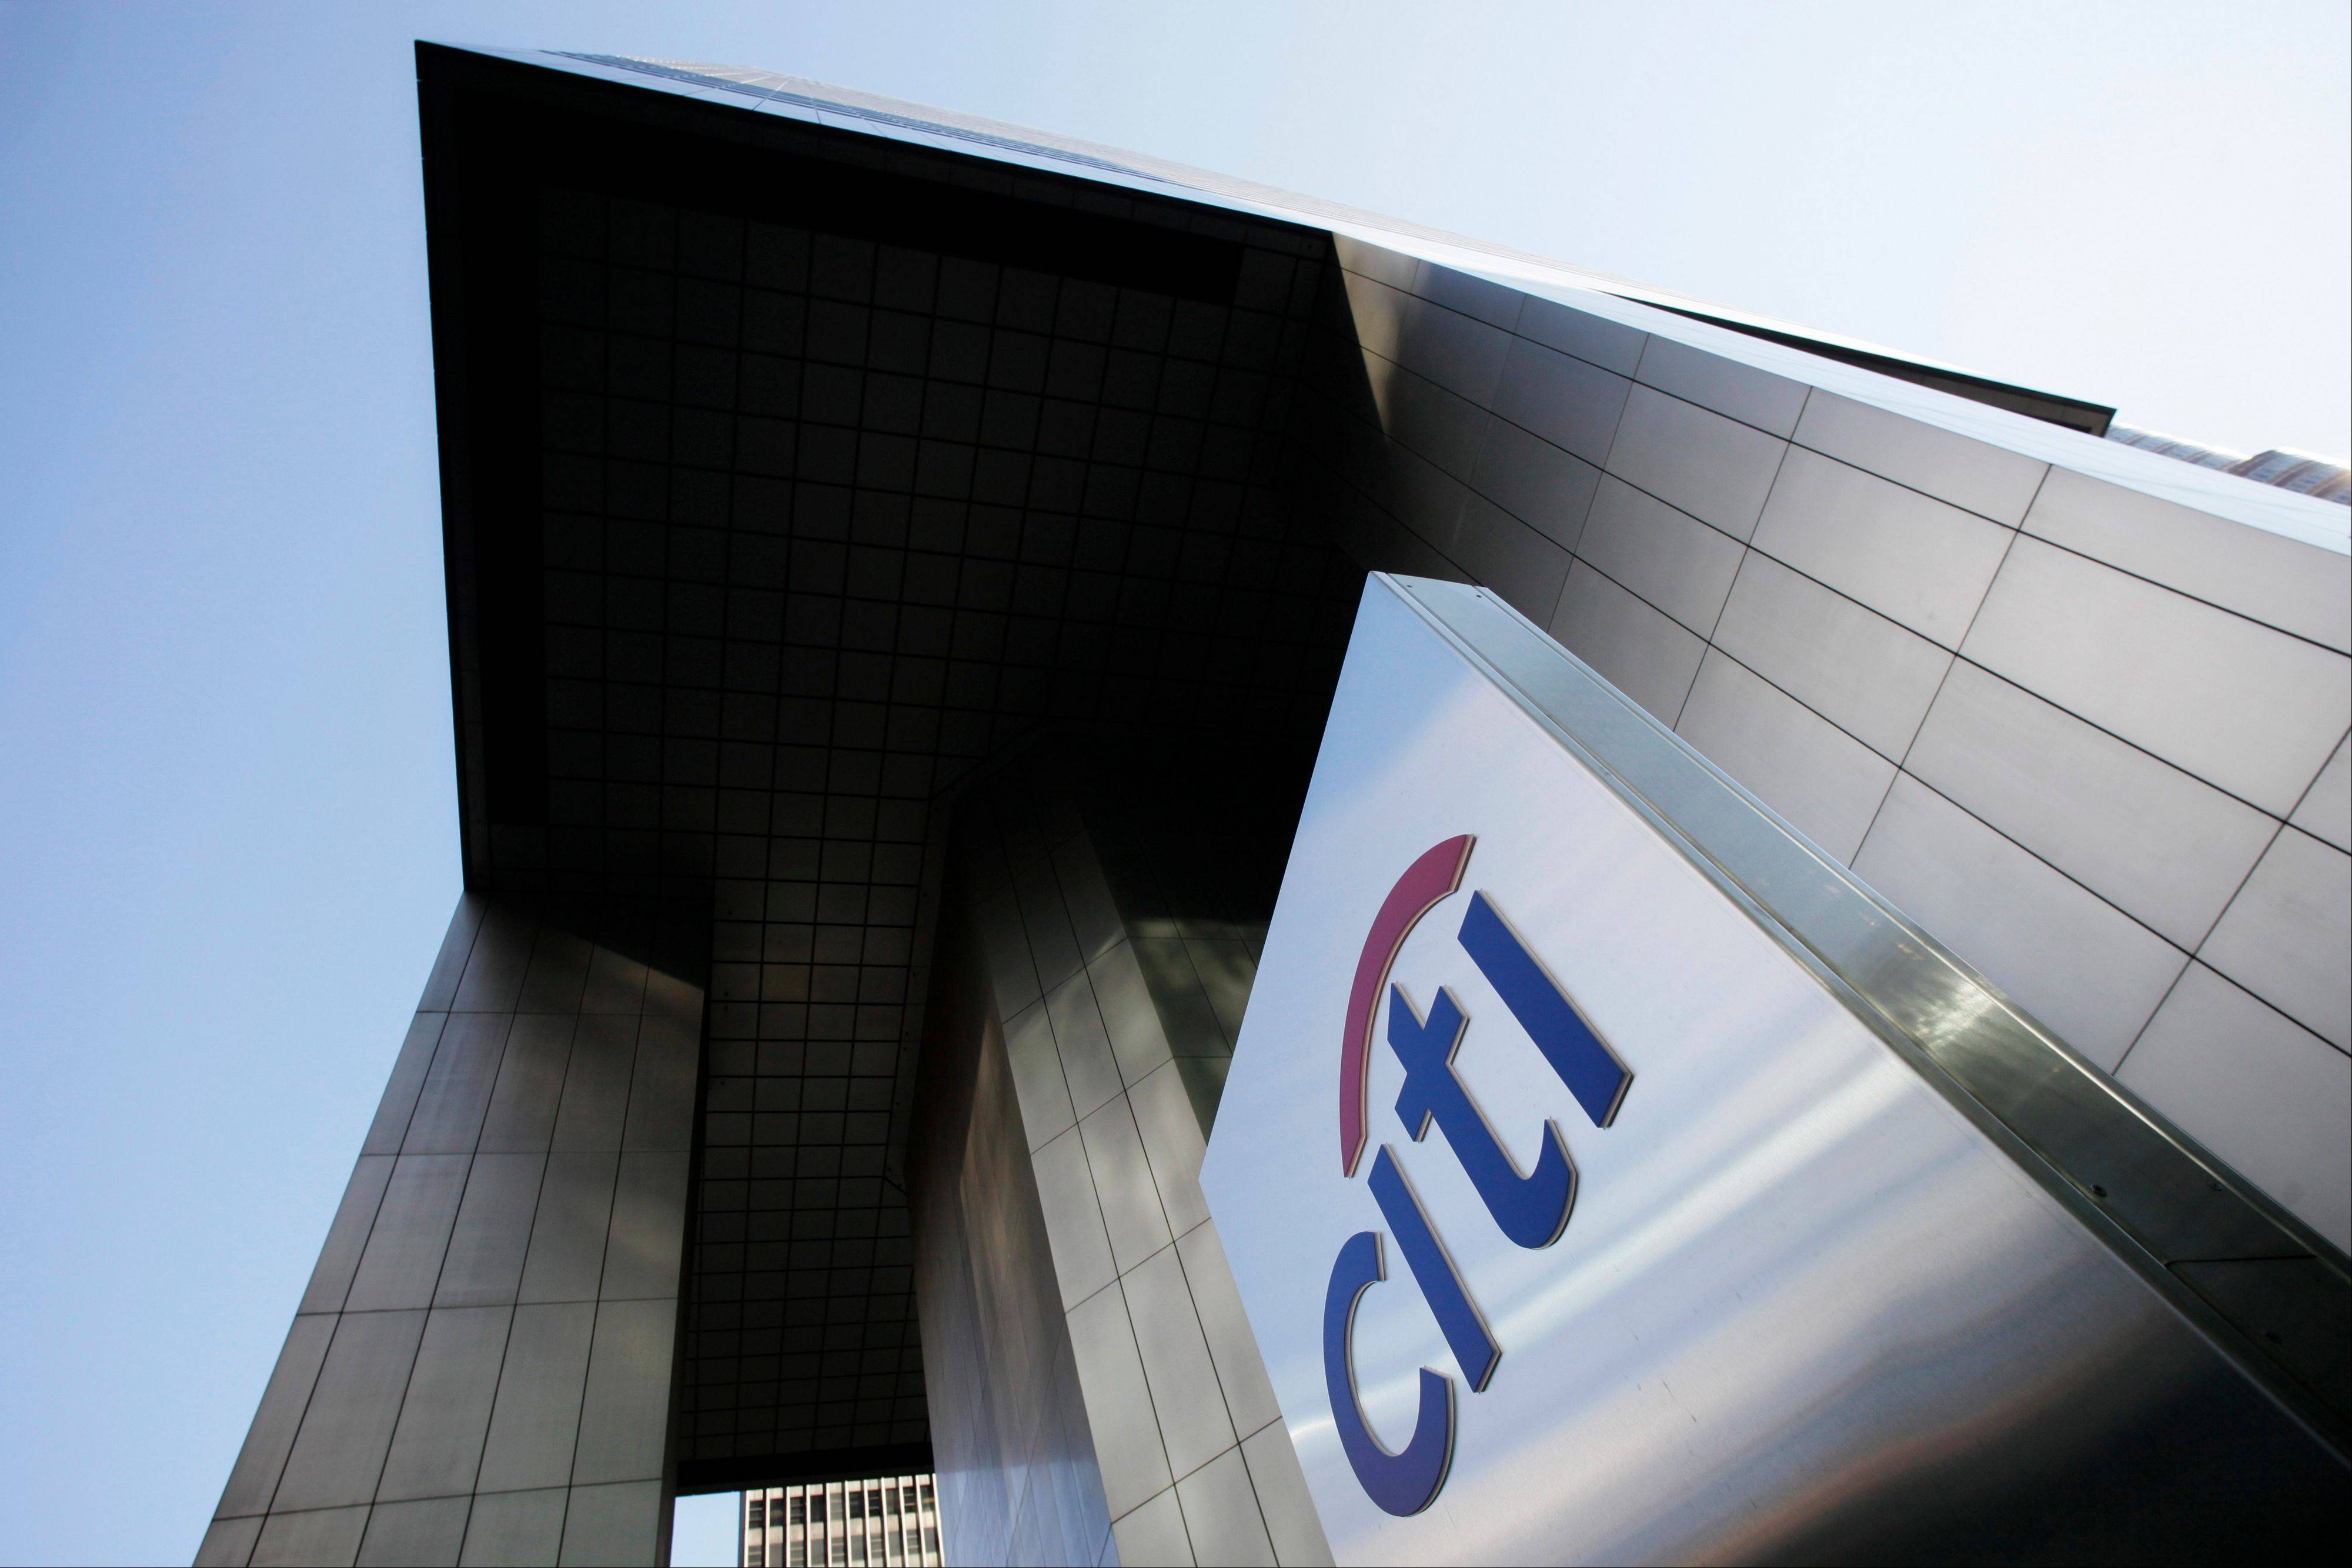 Citigroup's fourth quarter earnings fell short of Wall Street's expectations as the bank's legal expenses rose and it released less money from its loan-loss reserves.